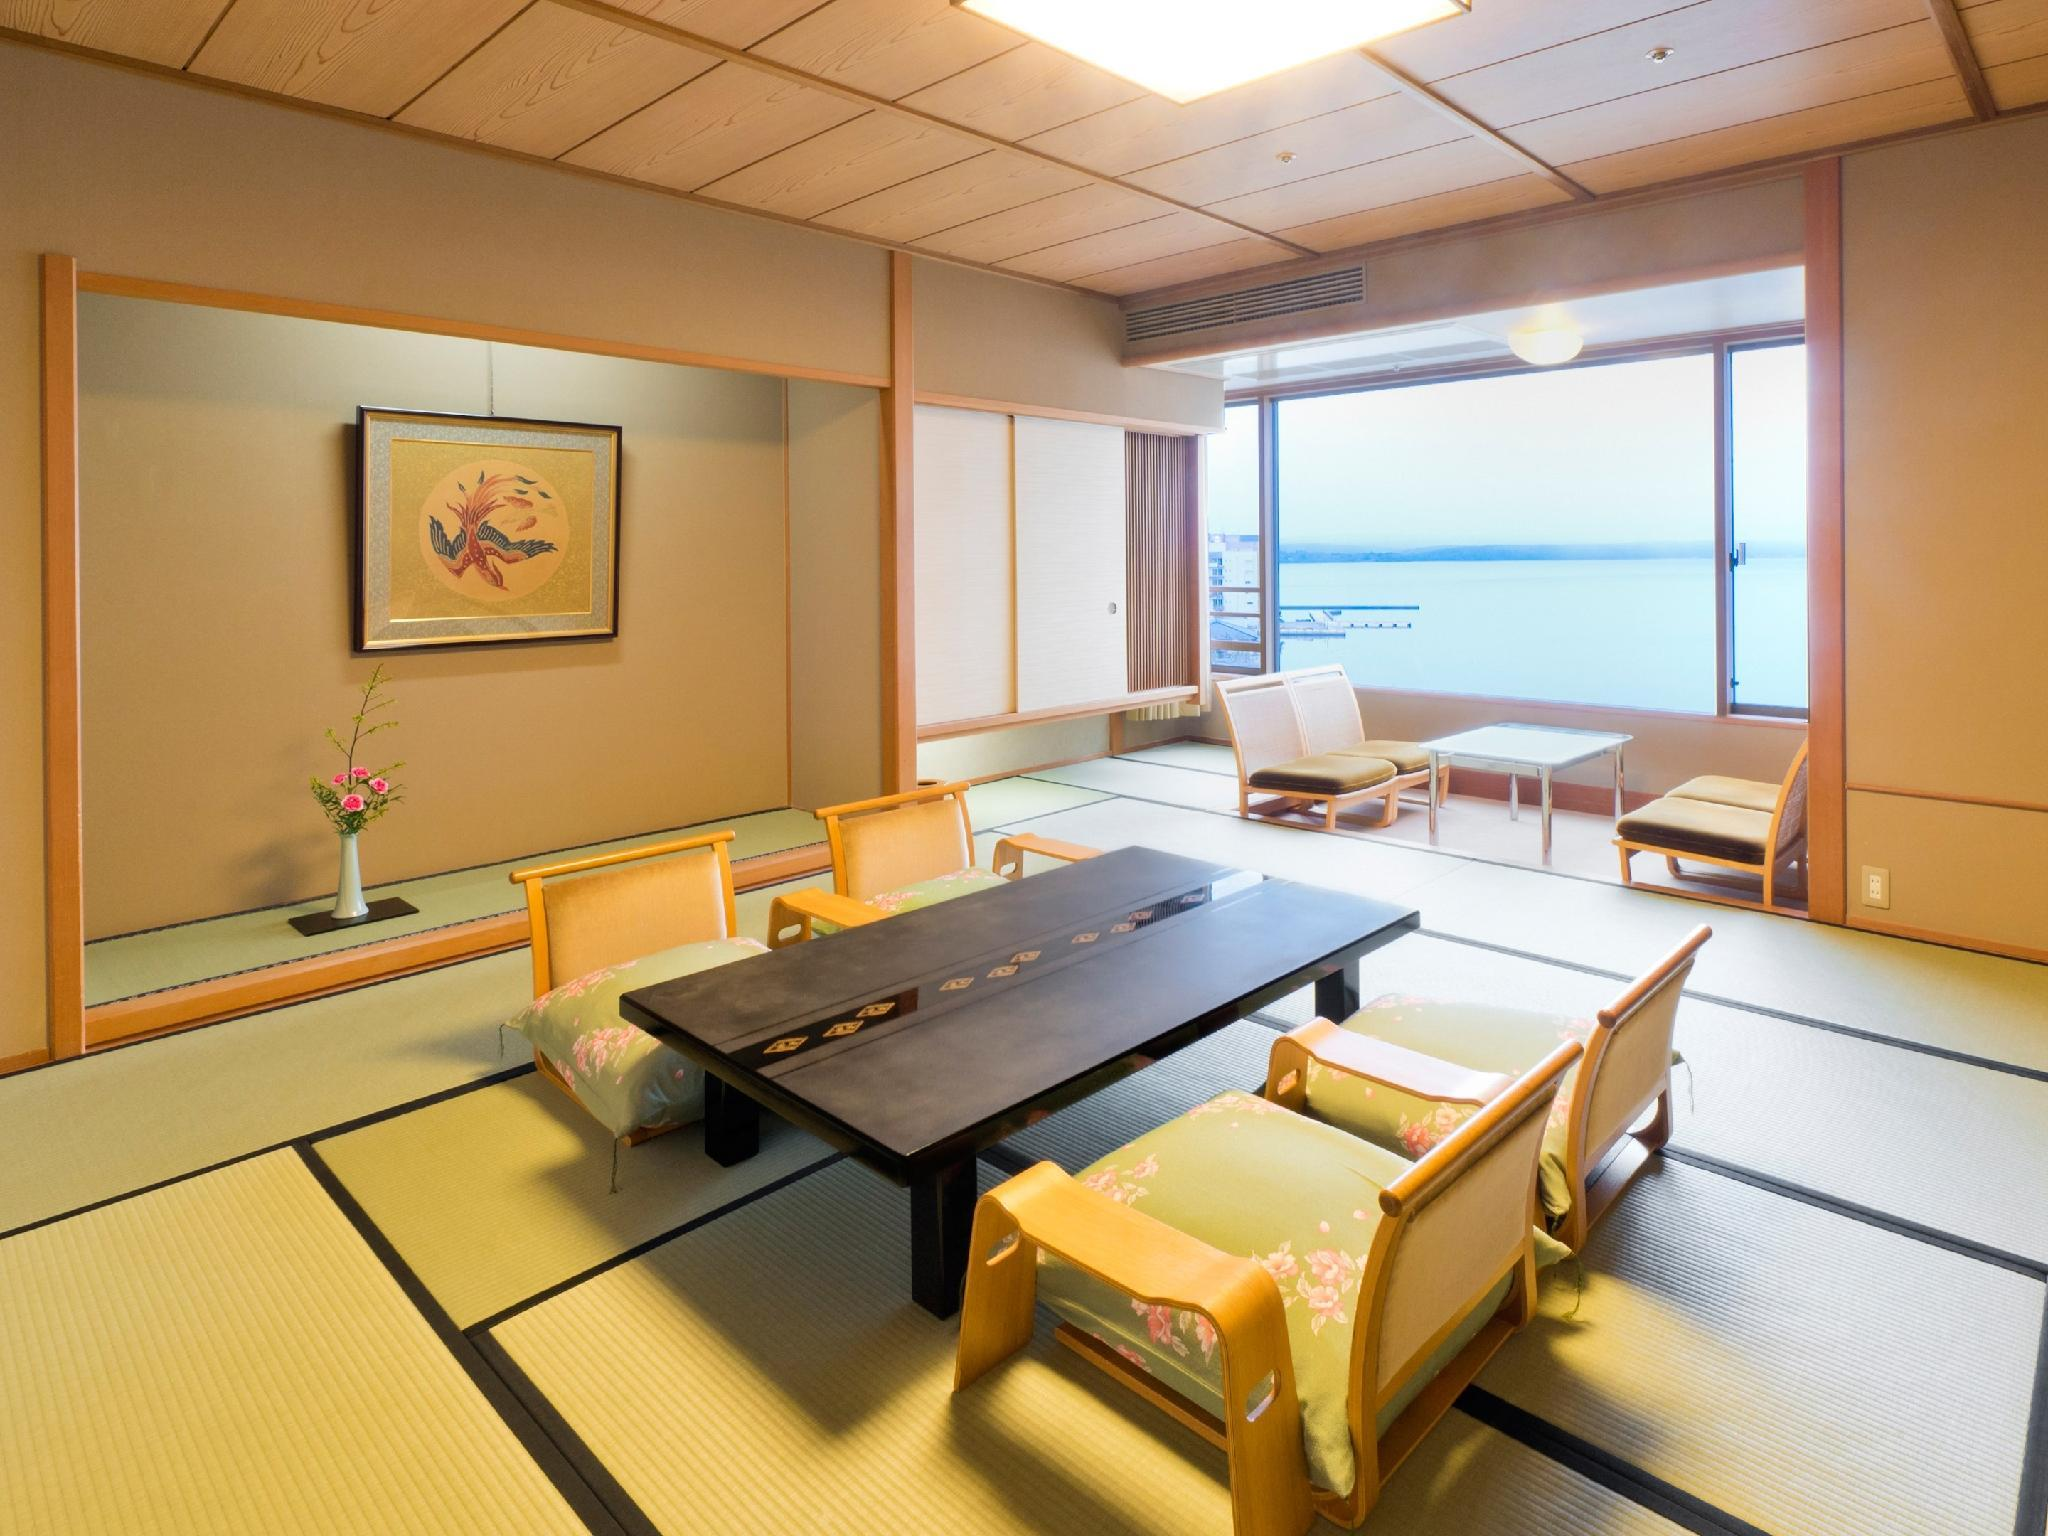 和室房・東之風・禁菸・晚餐地點: 劇場餐廳「饗」(Ai) (Japanese-style Room  (Higashi-no-Kaze Wing, Non-Smoking)*Theater dining)